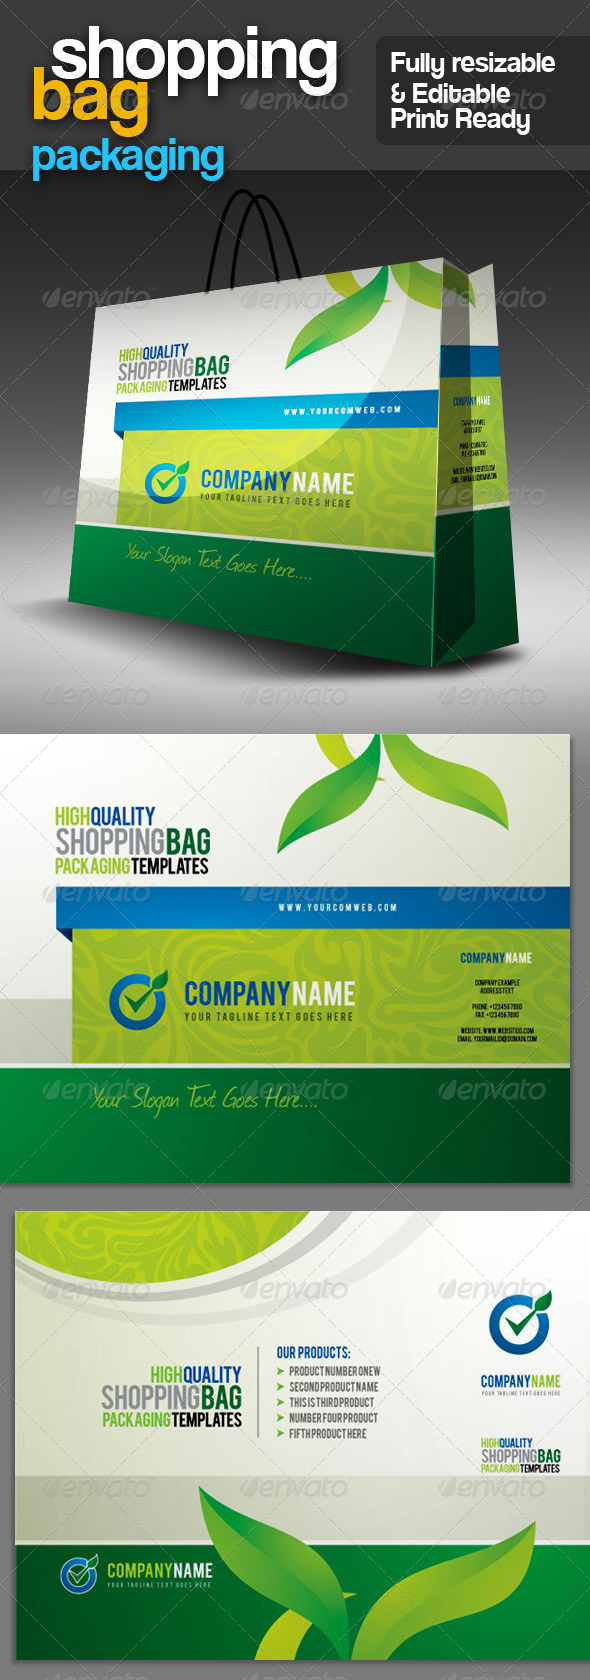 GA Shopping Bag Packaging v.2 - Packaging Print Templates